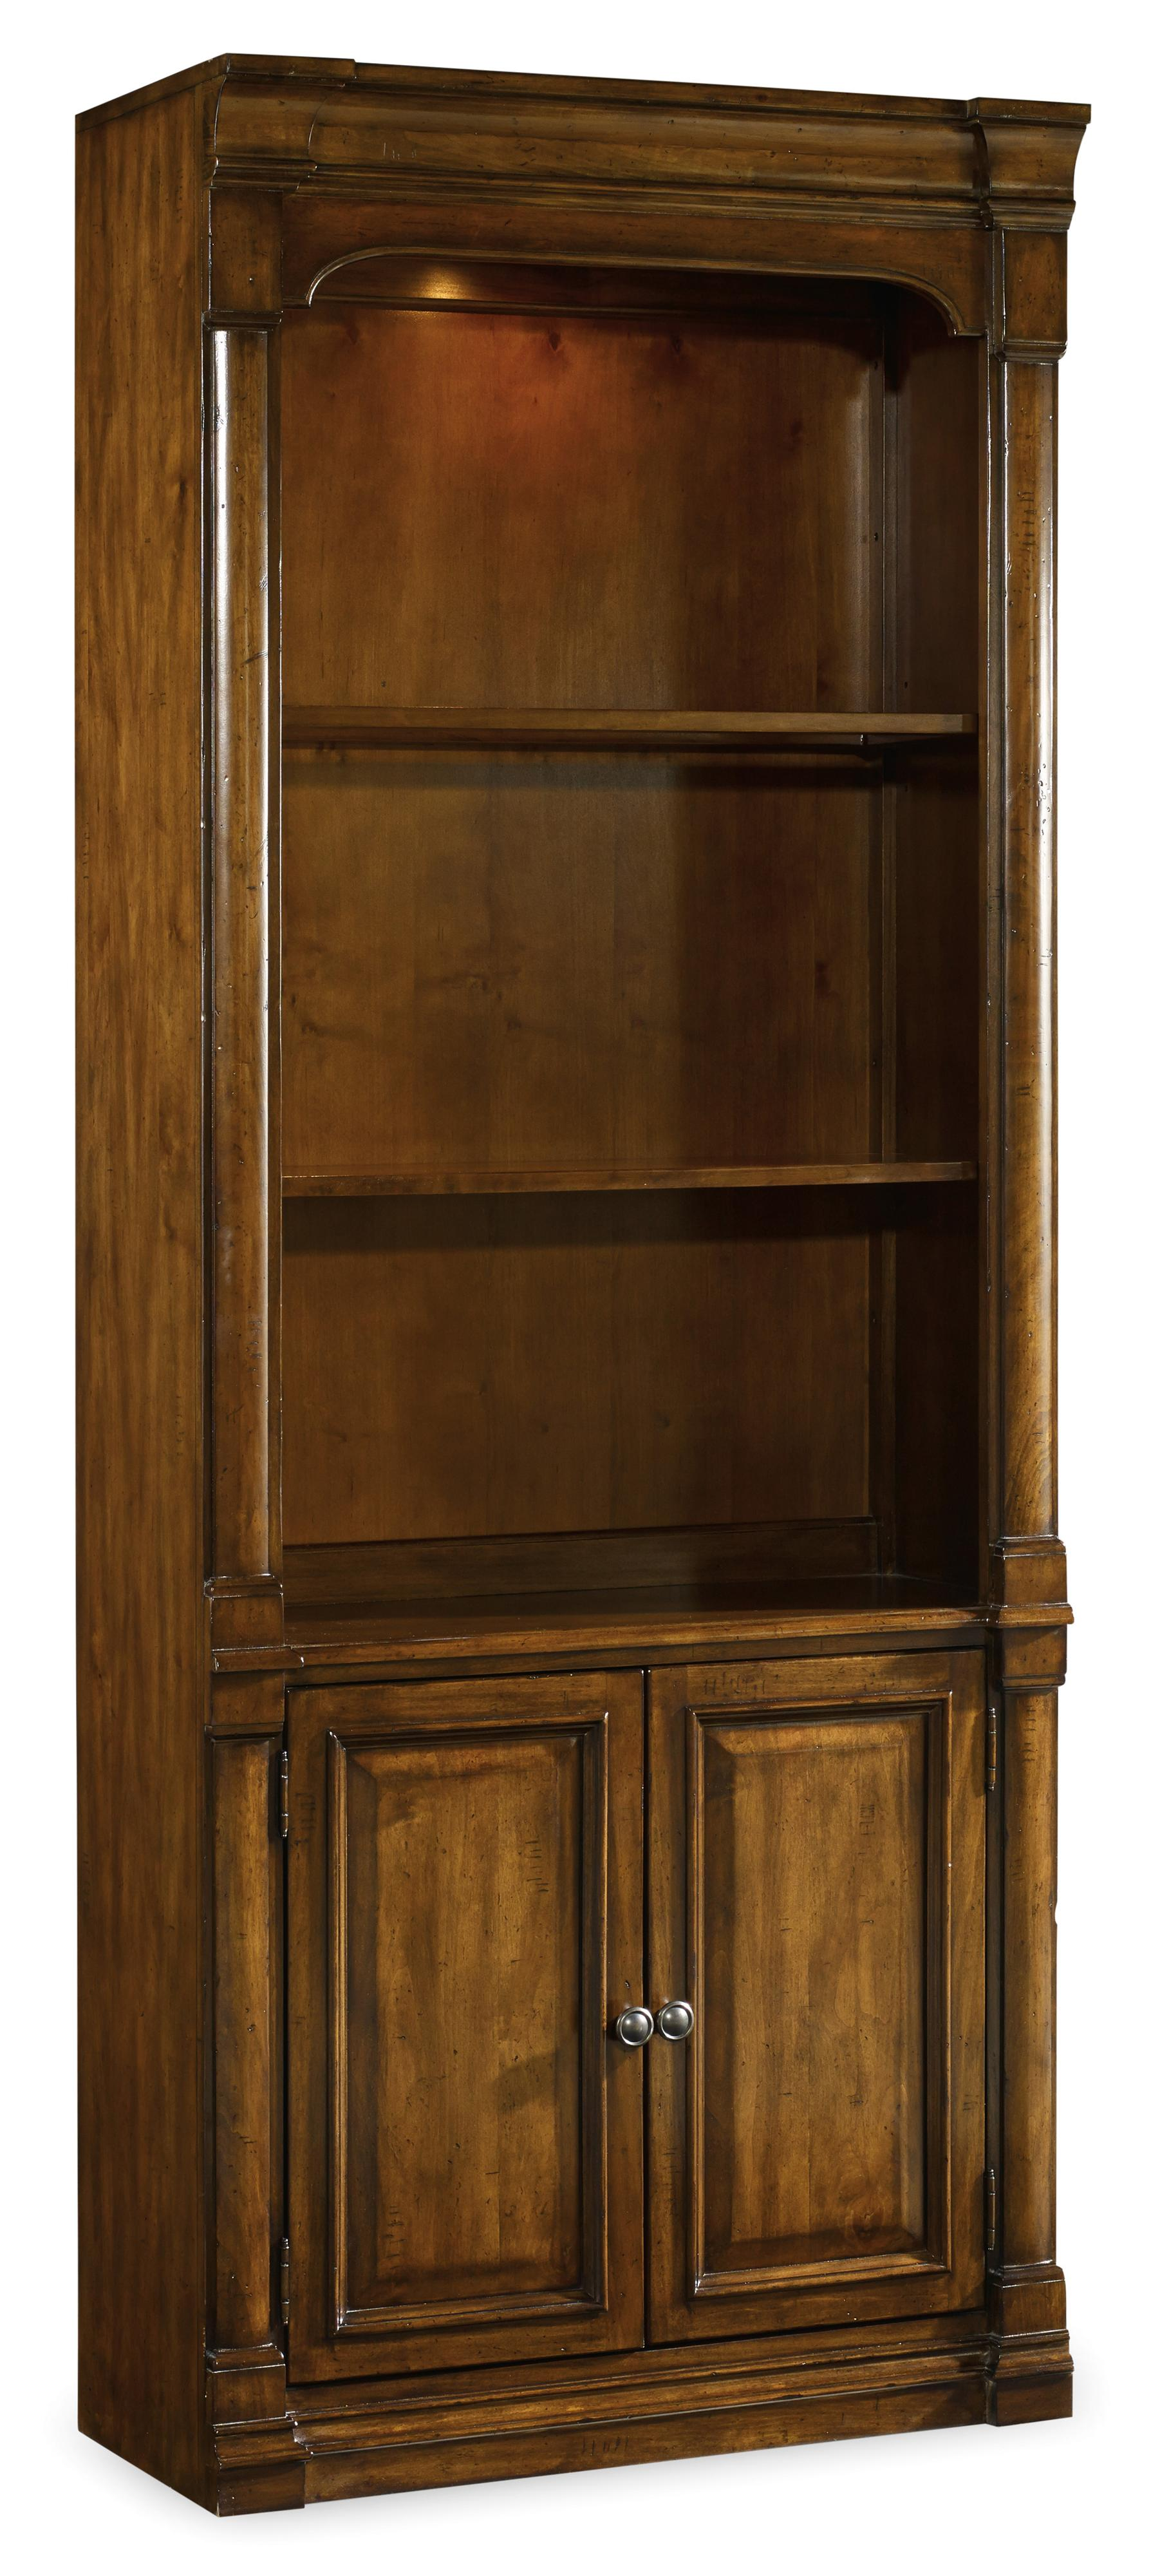 Hooker Furniture Tynecastle Traditional Bunching Bookcase Story Amp Lee Furniture Combination